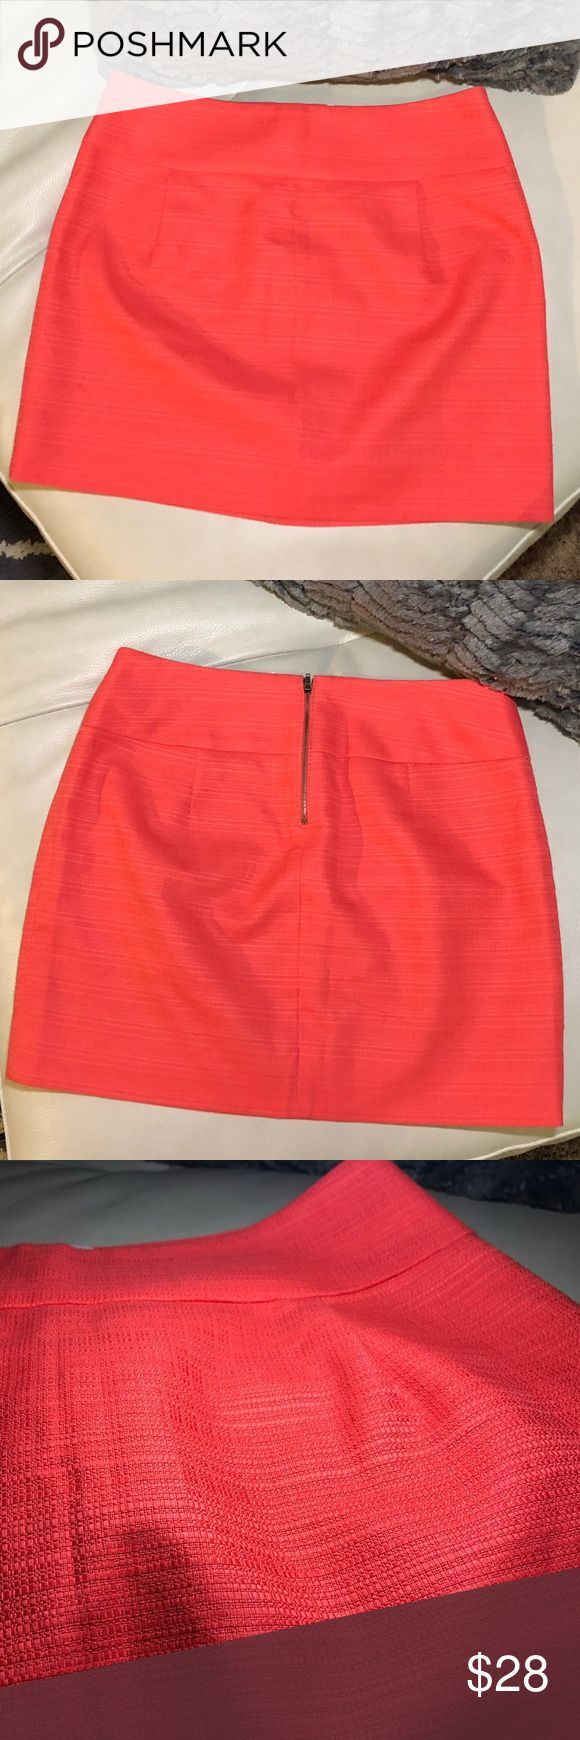 """J. Crew twill skirt J.Crew chino twill skirt in a melon - salmon color /two darts in the front and back / zip back /  16.5"""" waist when laid flat / 15.5""""  from top of waist to Hemline . Please note that skirt is pinned in the back on mannequin because it kept sliding off!  100% cotton  Make an offer! J. Crew Skirts Midi"""